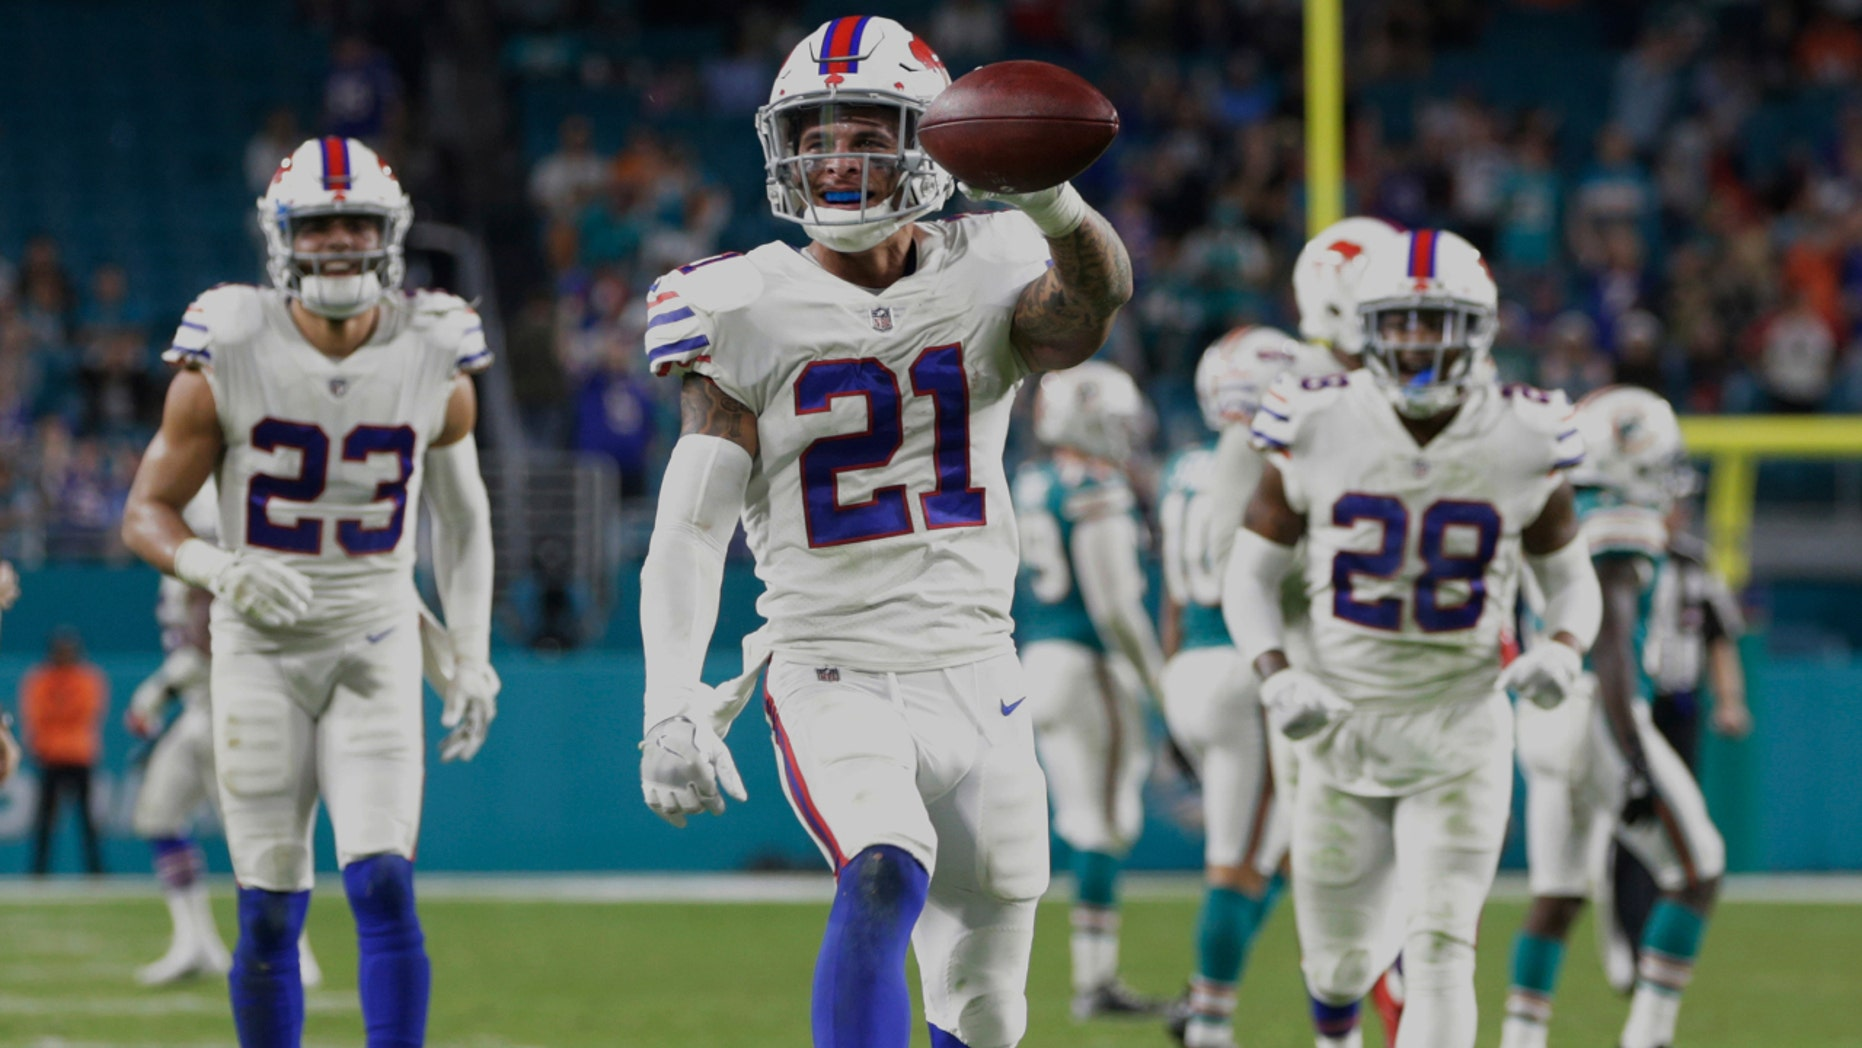 Buffalo Bills free safety Jordan Poyer (21) celebrates an interception against the Dolphins in Miami, Dec. 31, 2017.